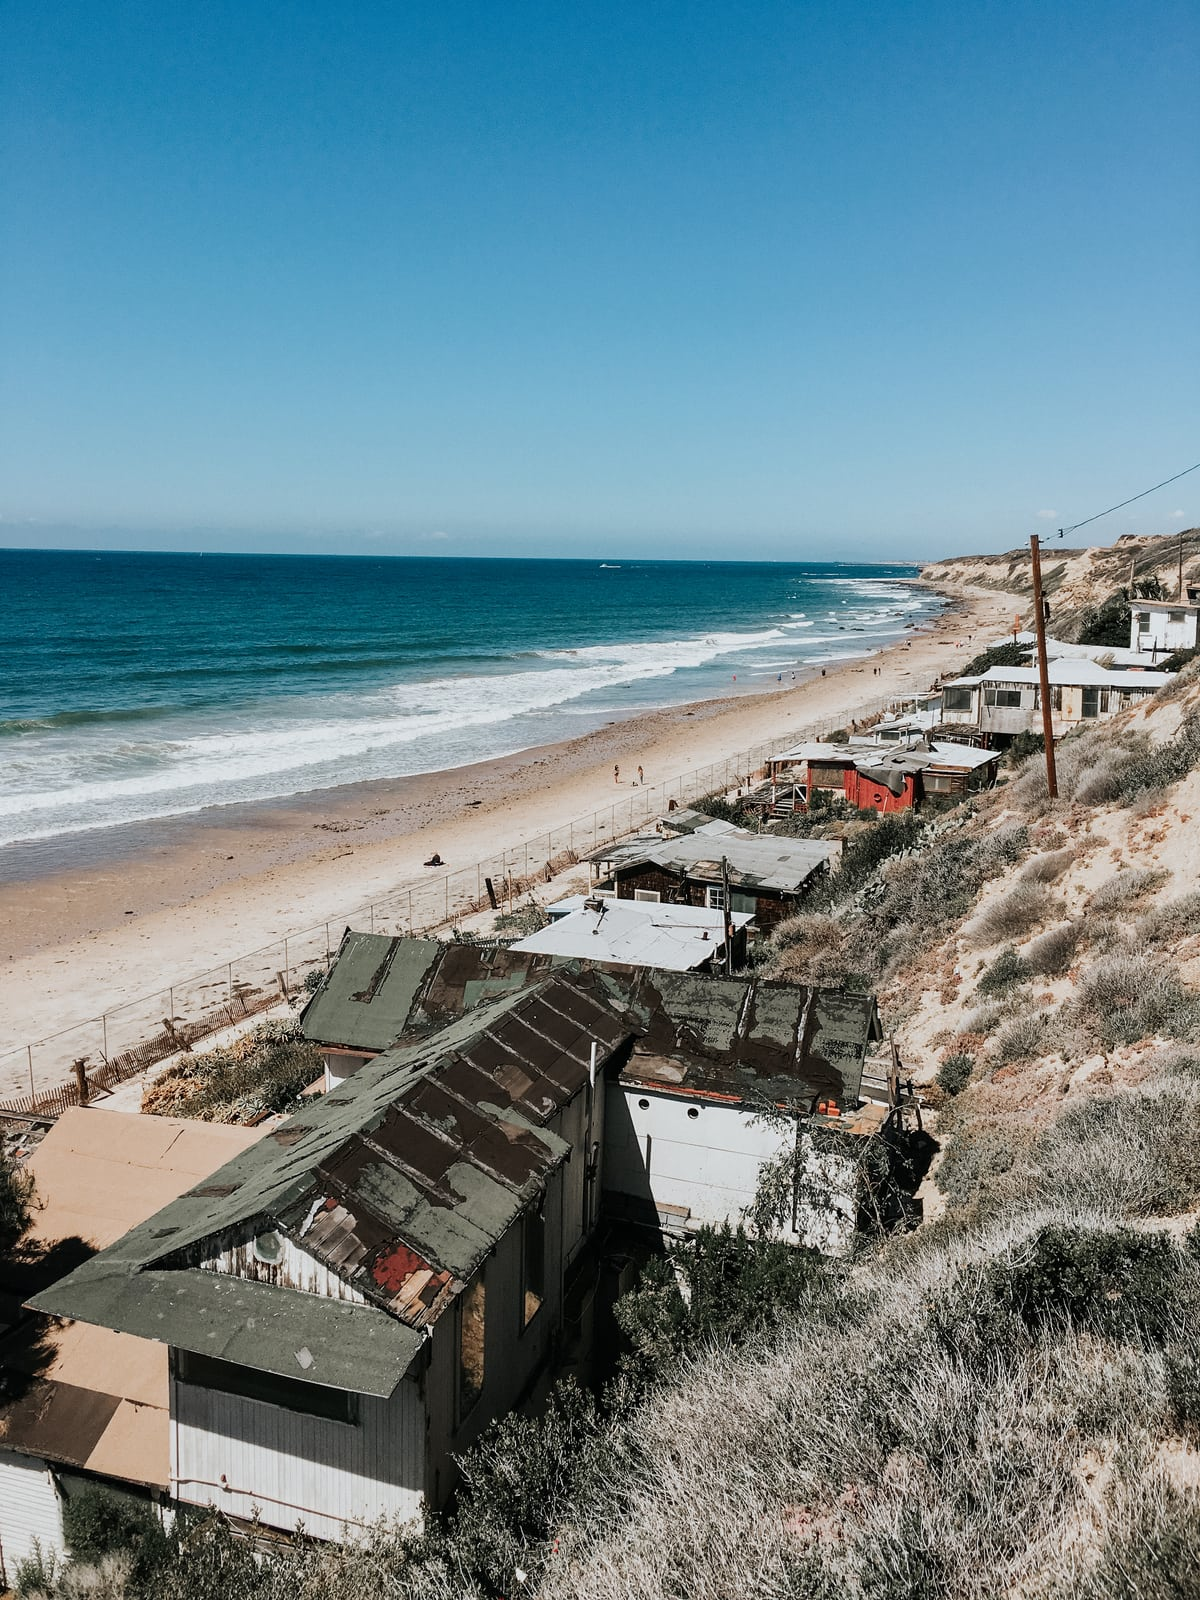 Hidden secret of Orange County - you can rent one of these cottages at Crystal Cove, relatively inexpensive Orange County place to stay